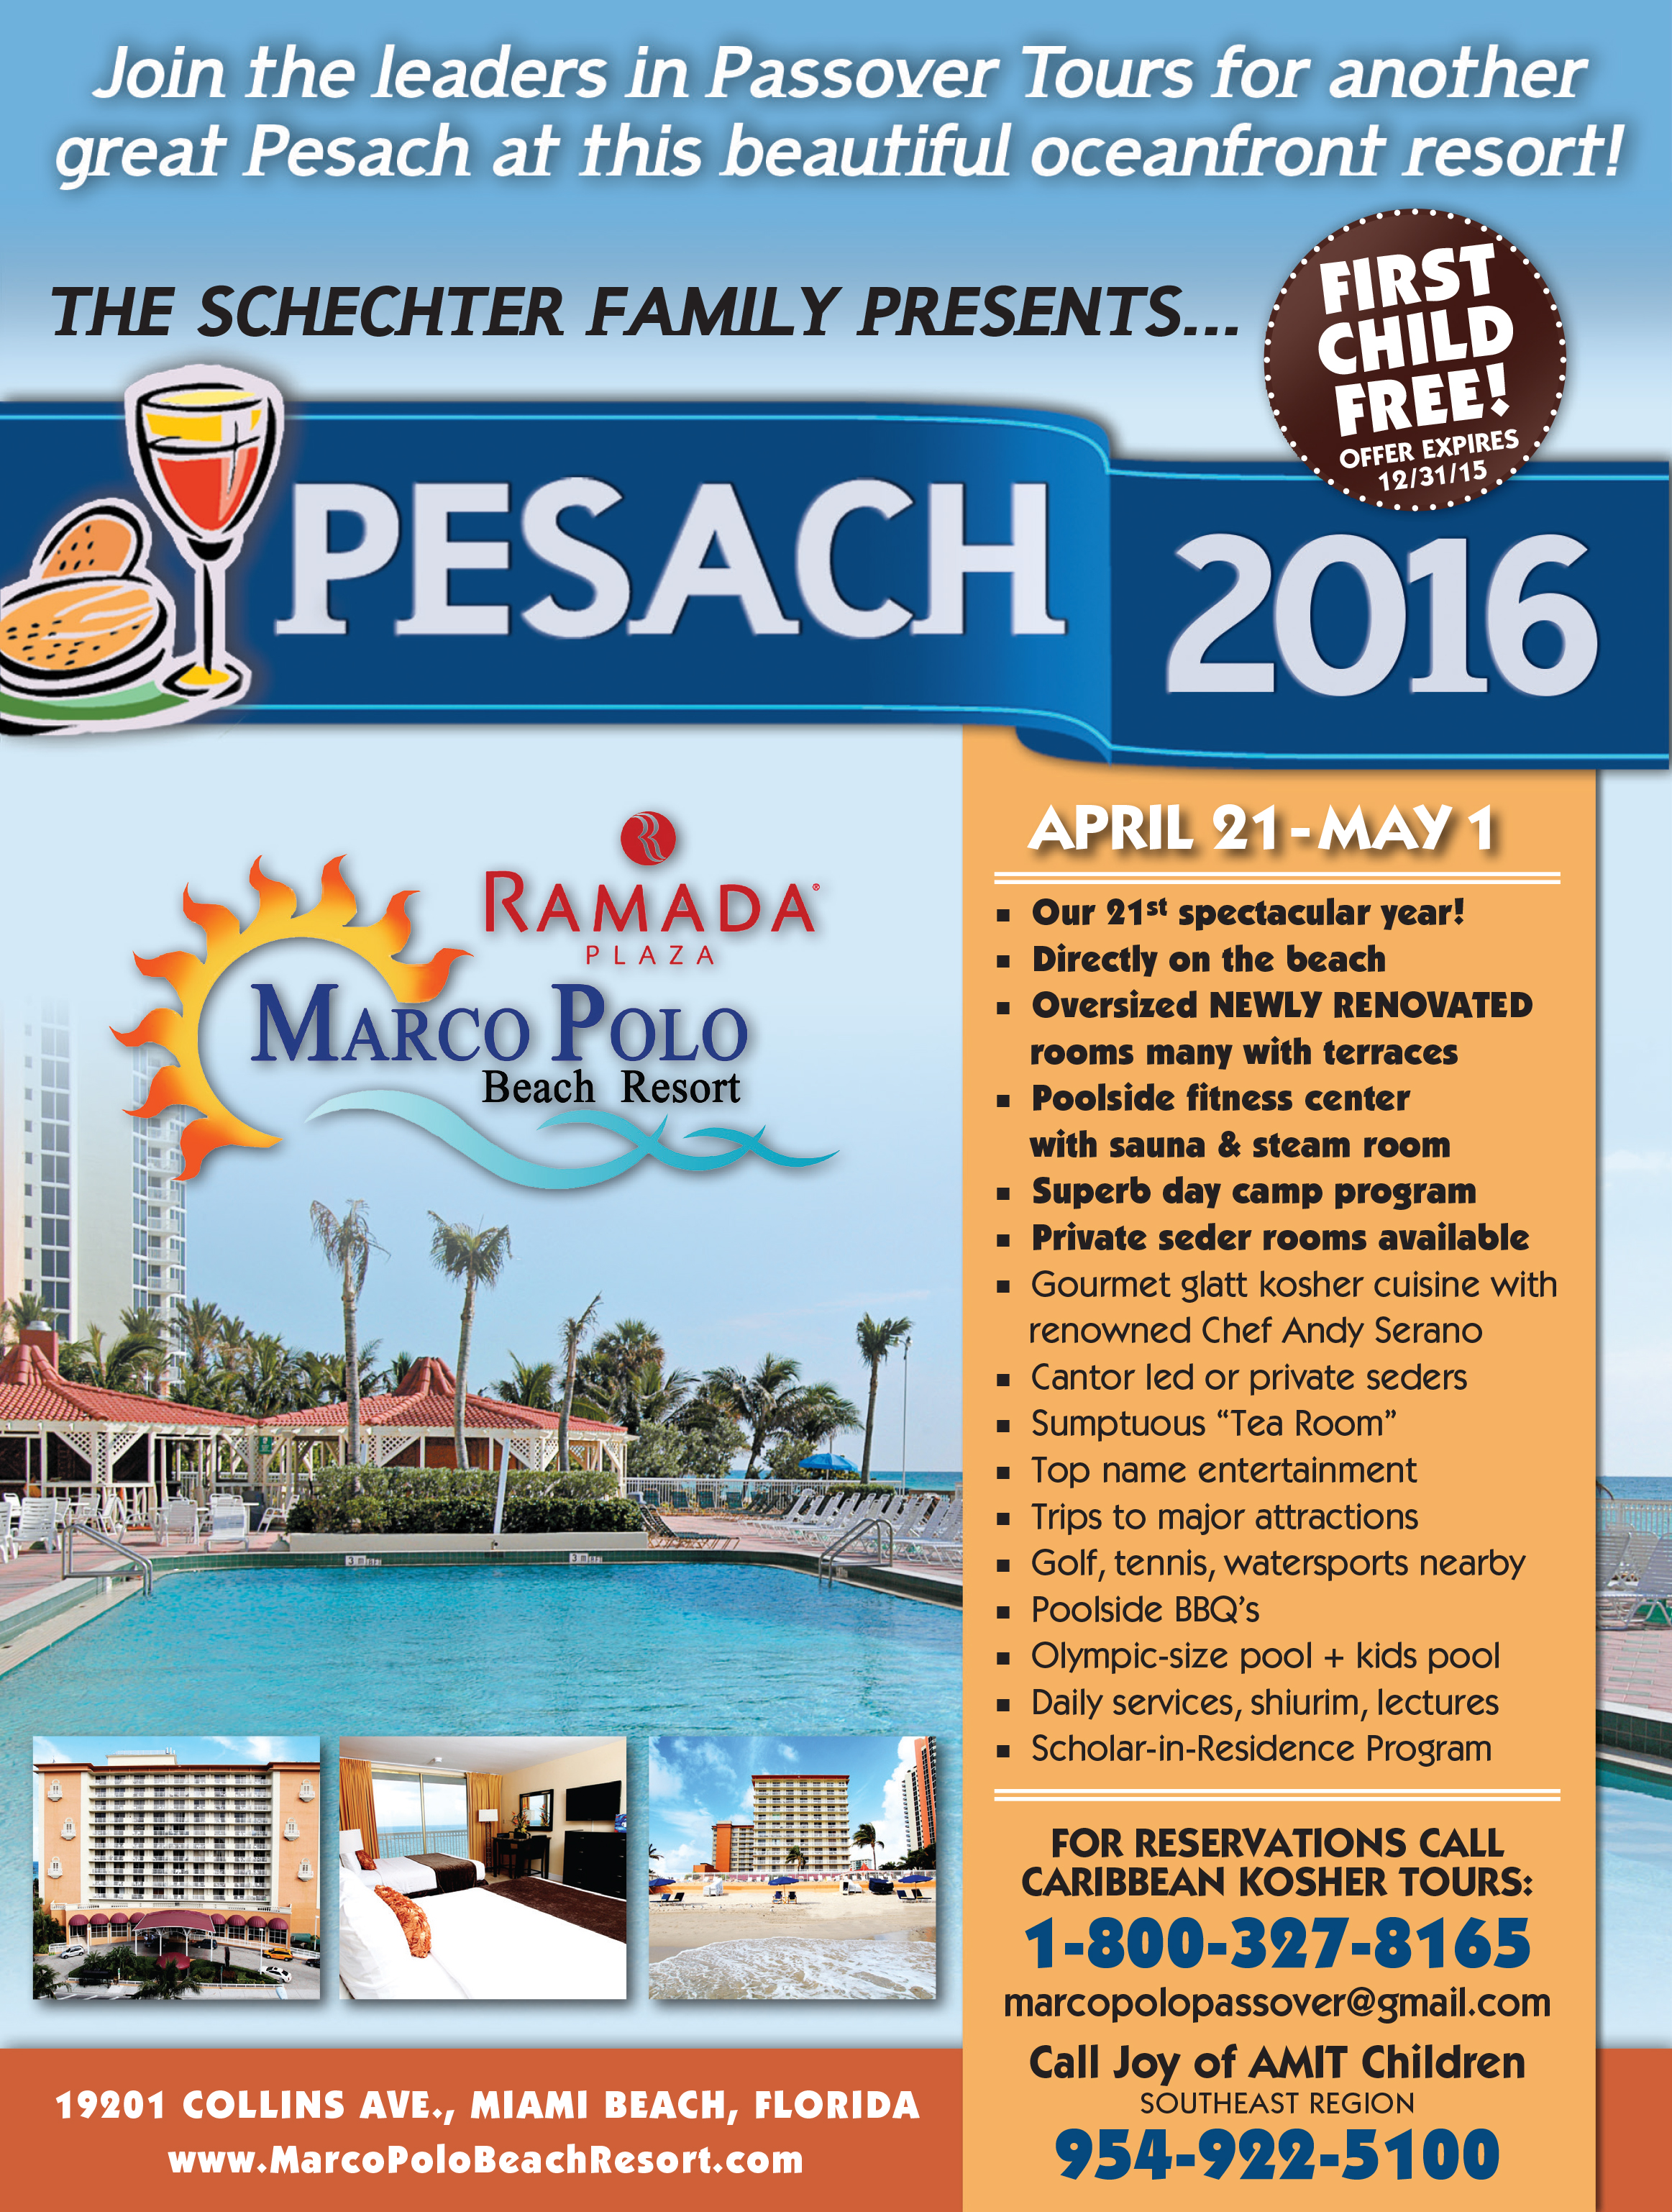 The Shechter Family of Caribbean Kosher Tours Presents Passover 2016 at the Marco Polo Beach Resort in Miami Beach, Florida